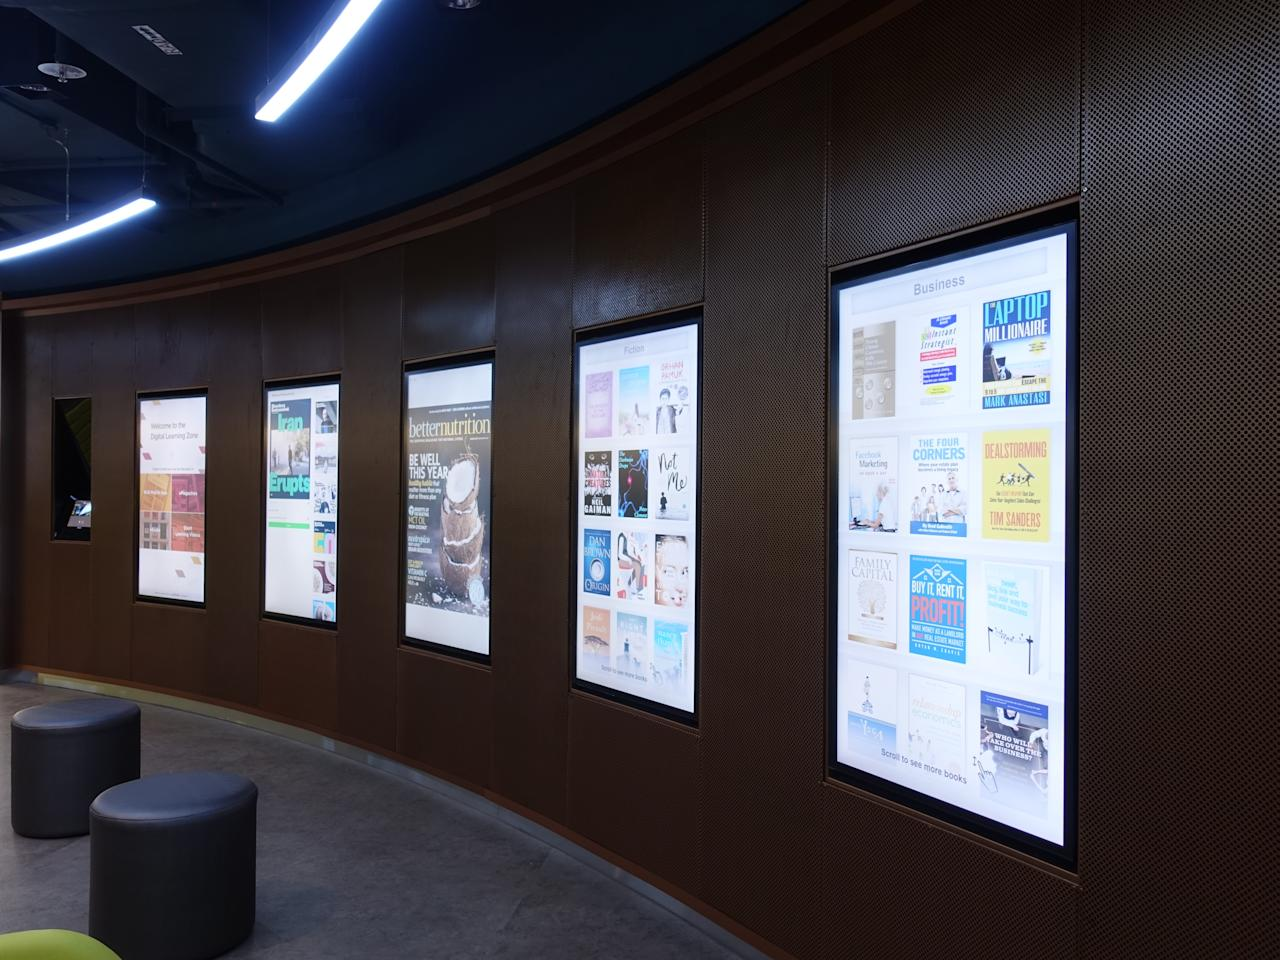 <p>Eye-catching screens for readers to browse through e-magazines and e-books at the digital learning zone. (Photo: Nurul Azliah/Yahoo Lifestyle Singapore) </p>